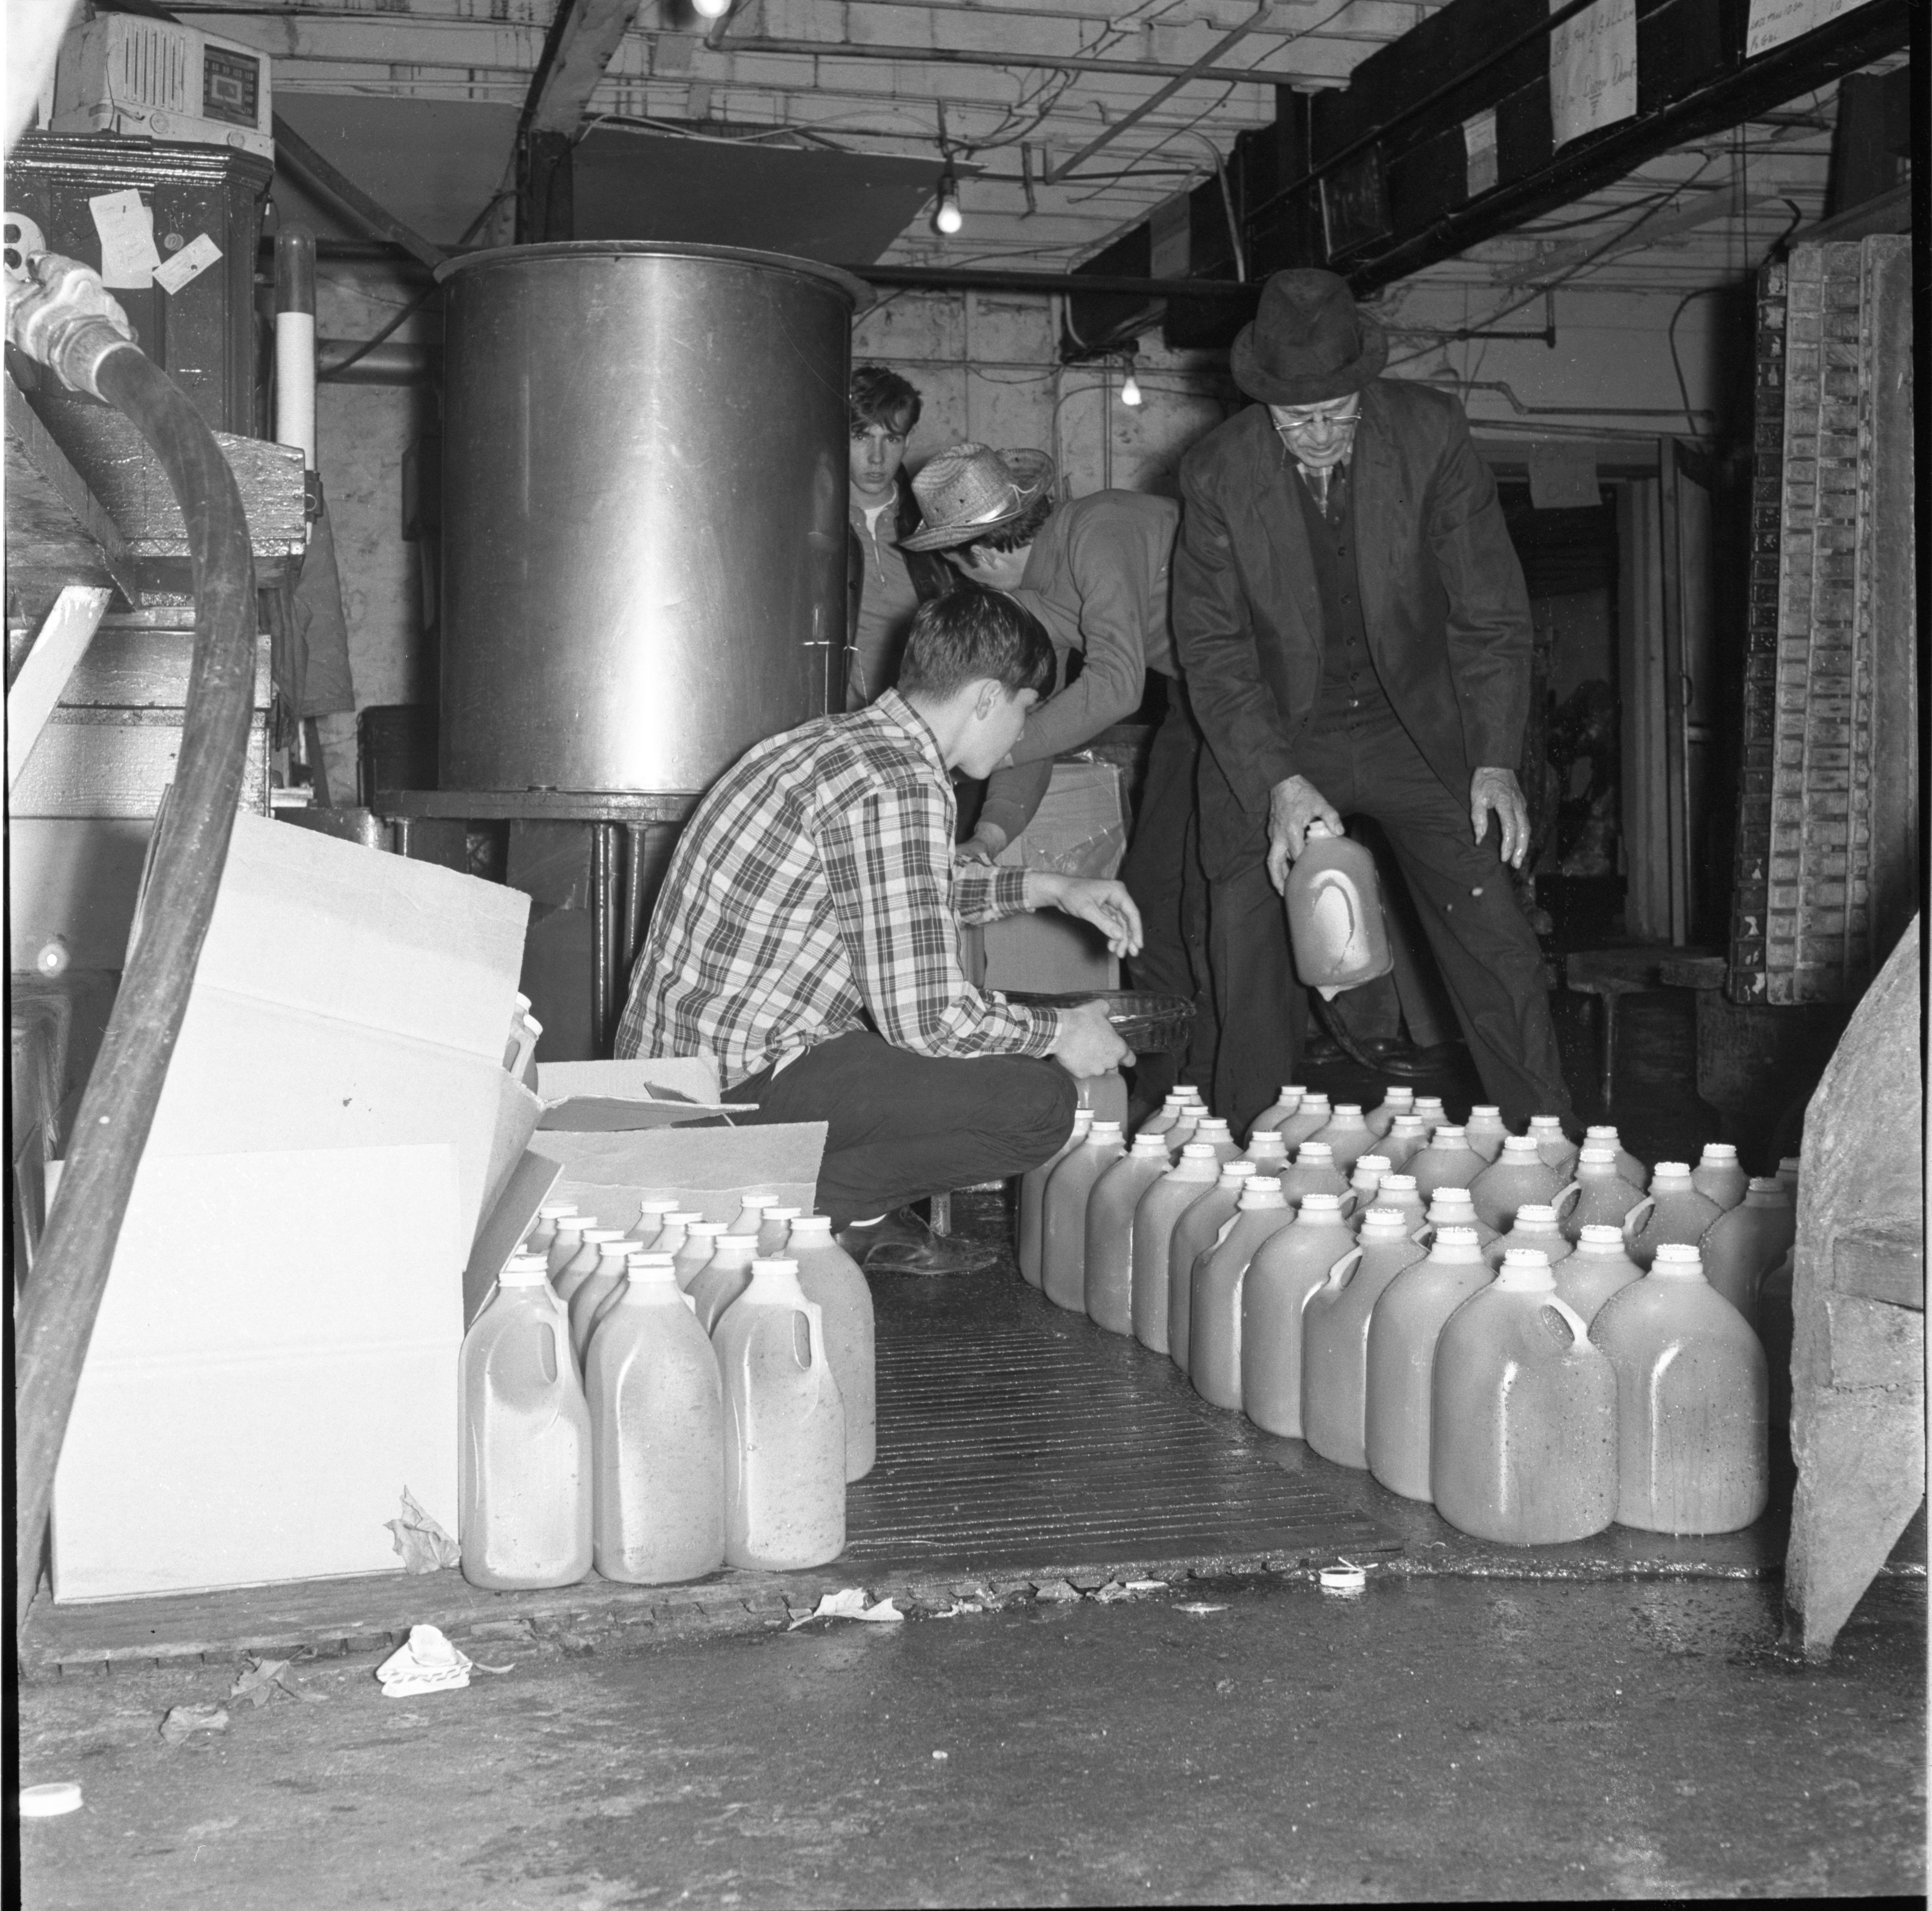 Jugs Of Freshly Bottled Cider At The Dexter Cider Mill, November 1966 image